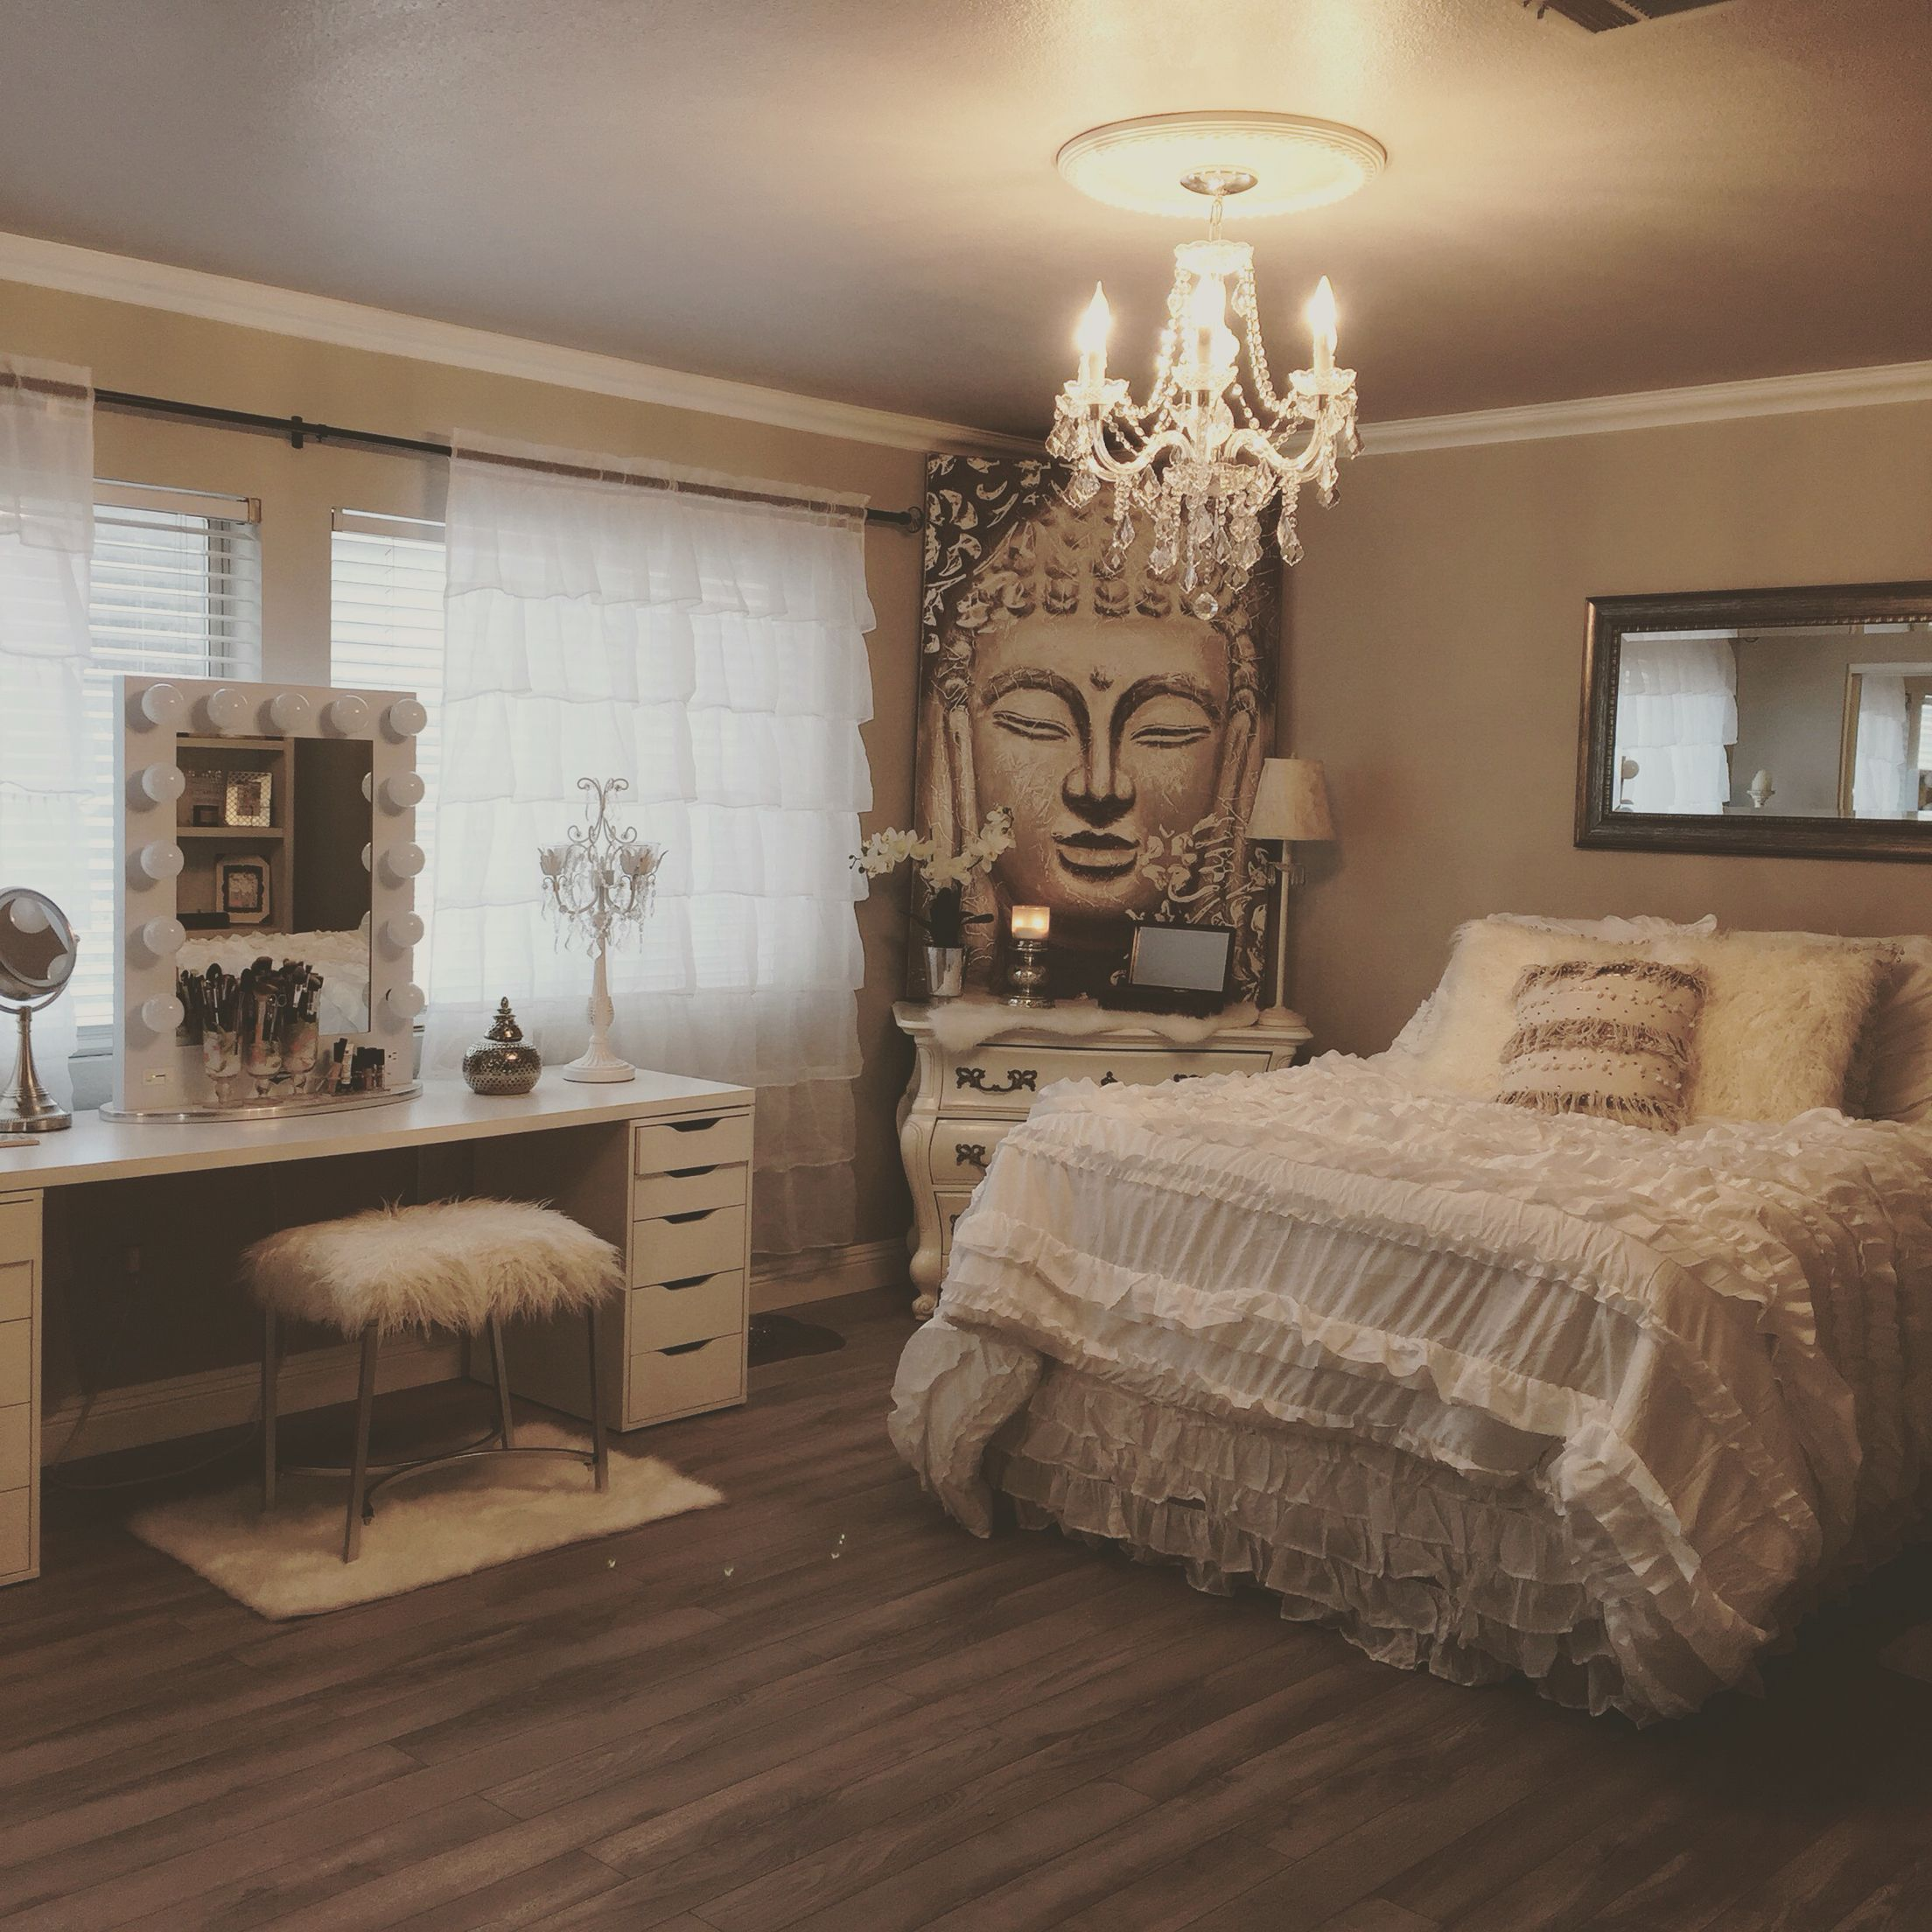 Bedroom Ideas 52 Modern Design Ideas For Your Bedroom: Shabby Chic Meets Zen Glam